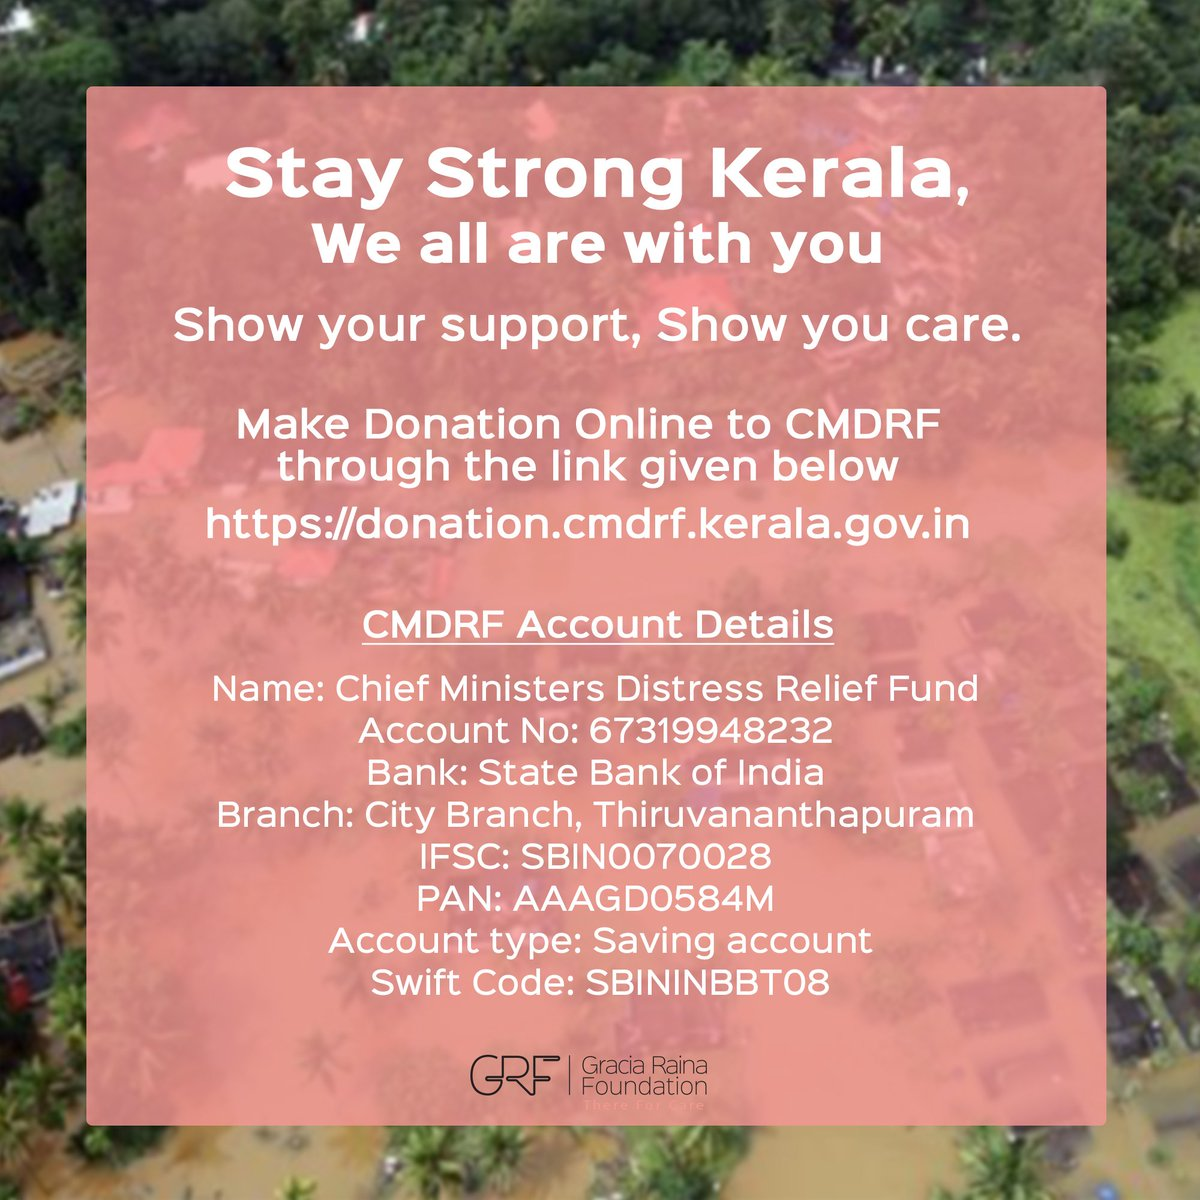 Stay Strong Kerala! We all are with you! We request you all to do your bit and support people of Kerala in this extremely terrible time. donation.cmdrf.kerala.gov.in #KeralaReliefFunds #StandwithKerala #KeralaFloods #KeralaSOS @CMOKerala